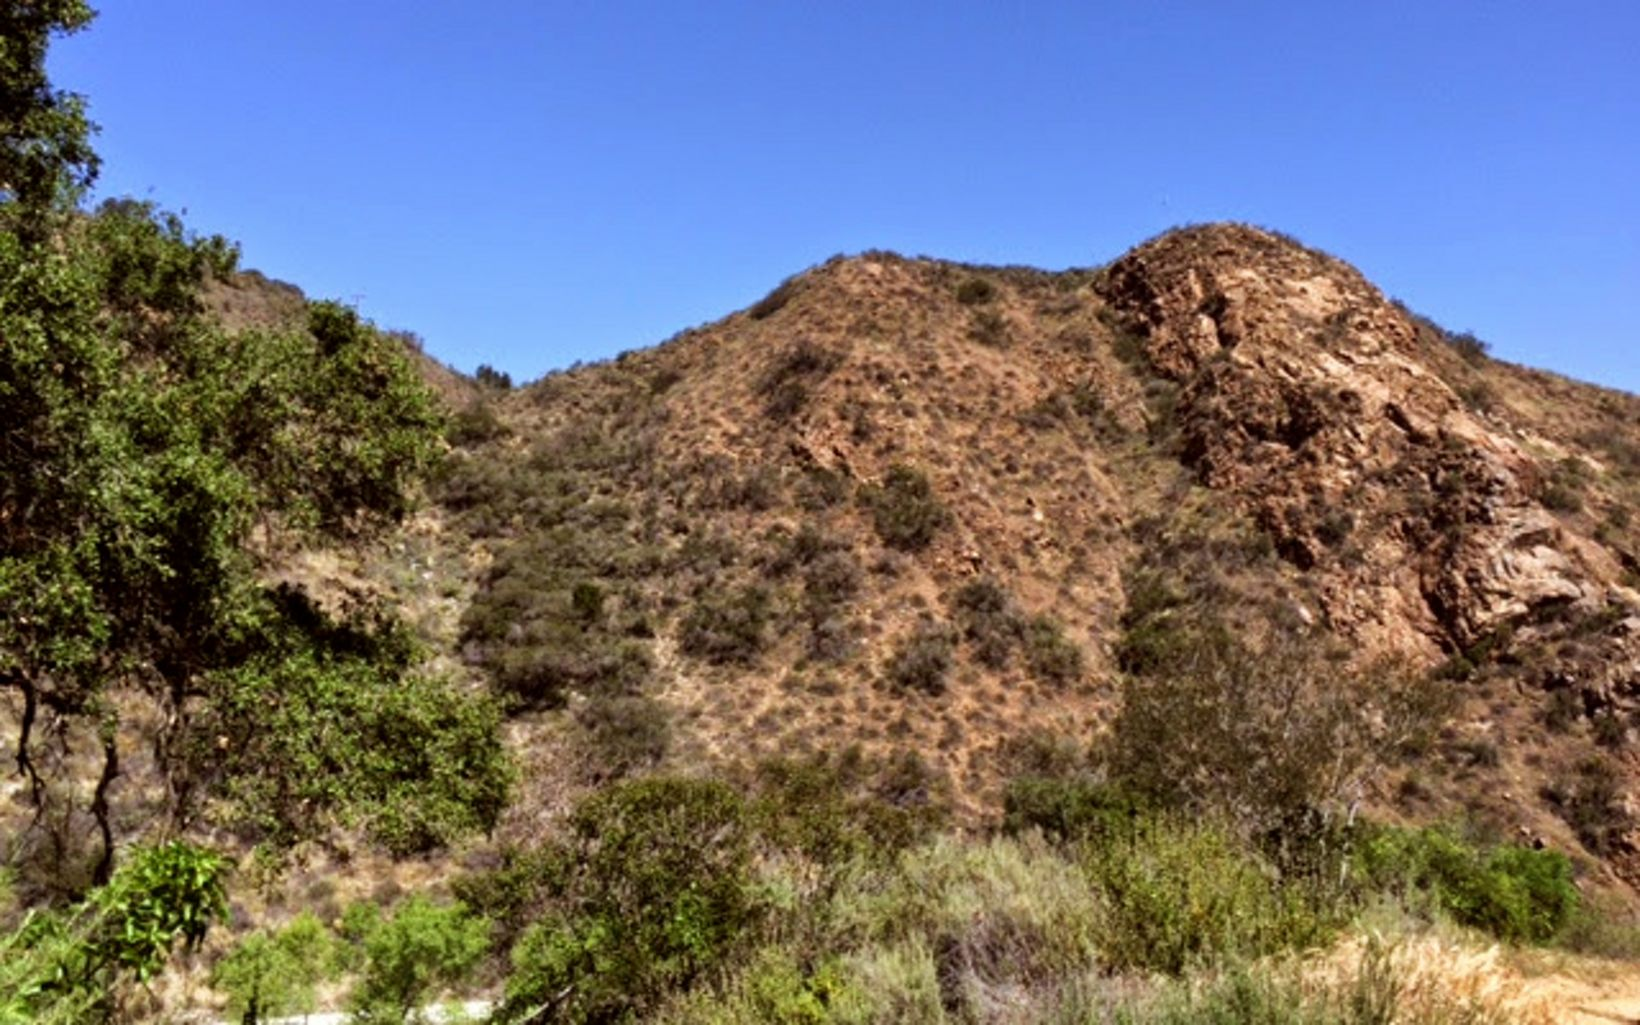 This 4,344-acre reserve in the Santa Ana Mountains provides habitat for mountain lions and other species whose survival depends on access to a large geographic range.